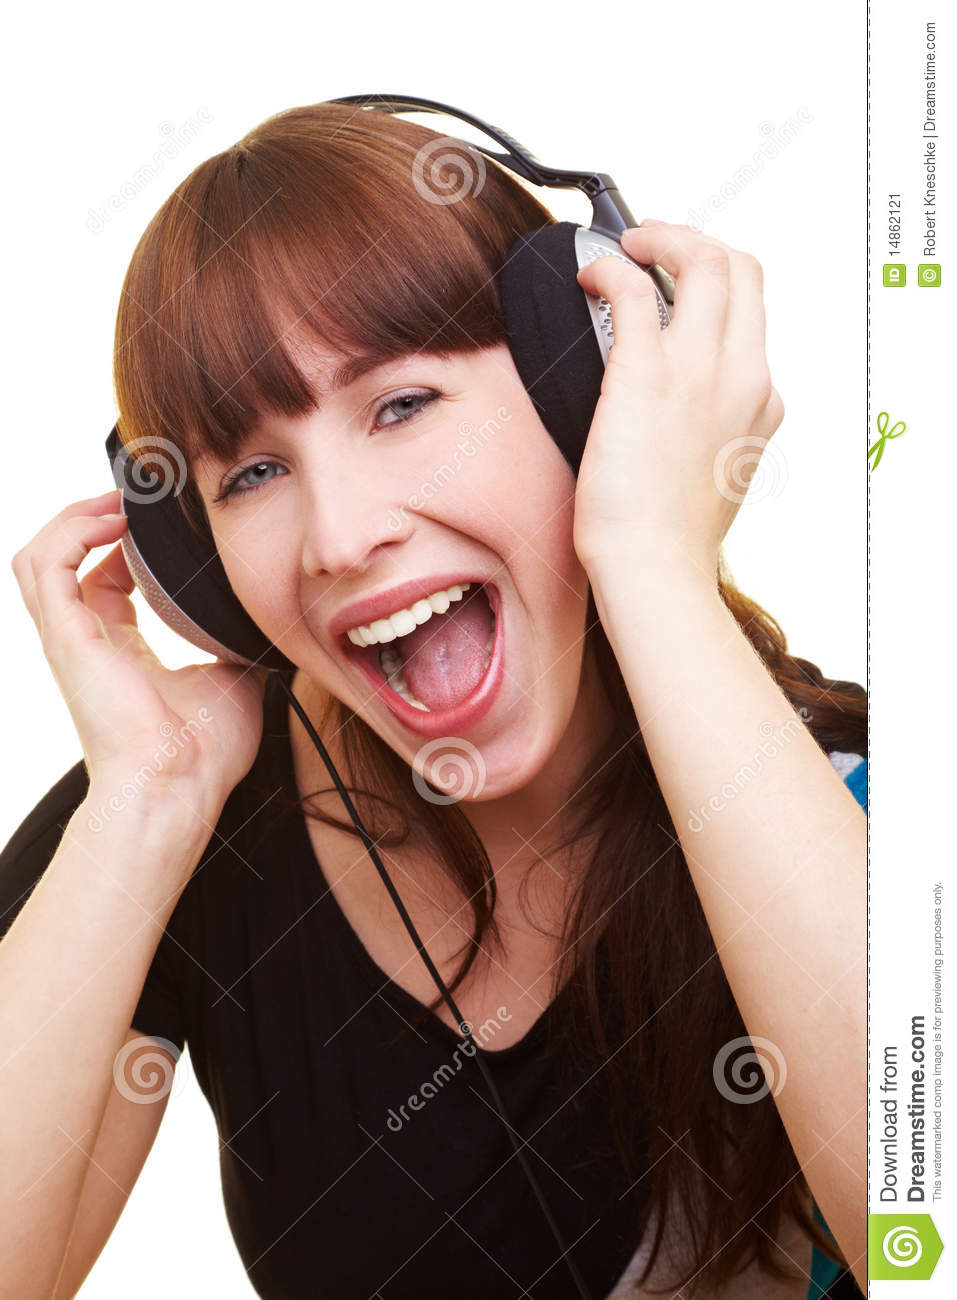 Woman with headphones screaming